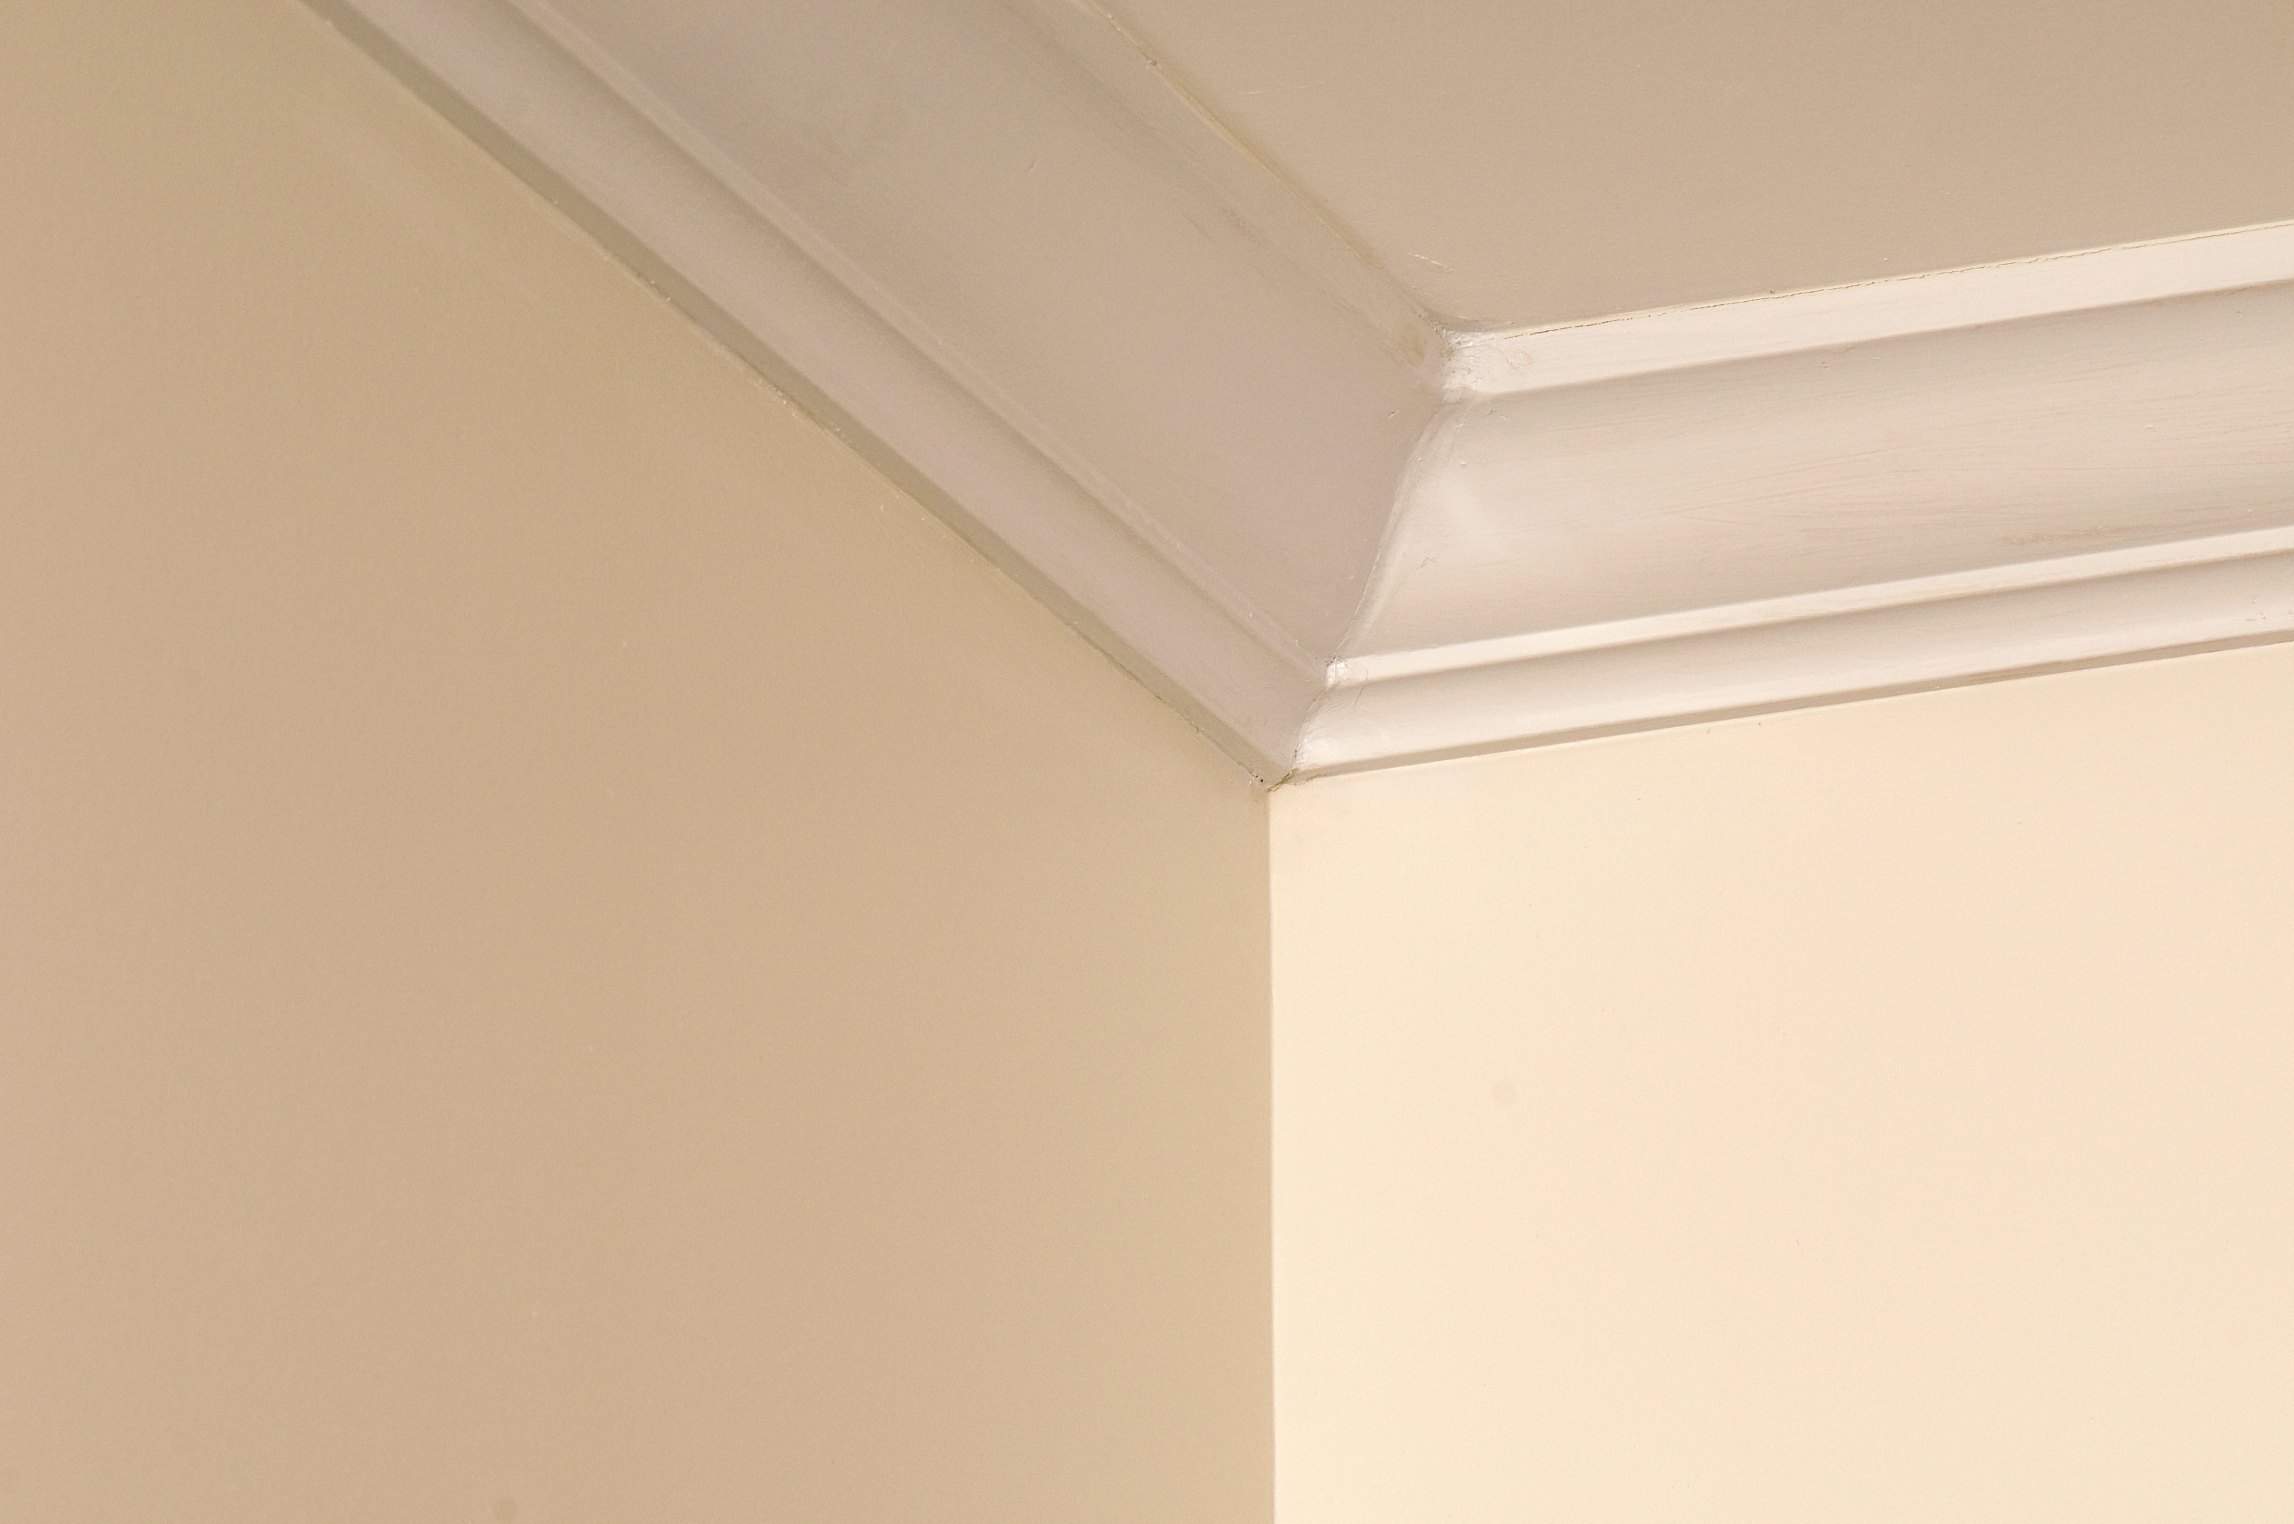 How To Cap The Open End On Crown Molding Ehow